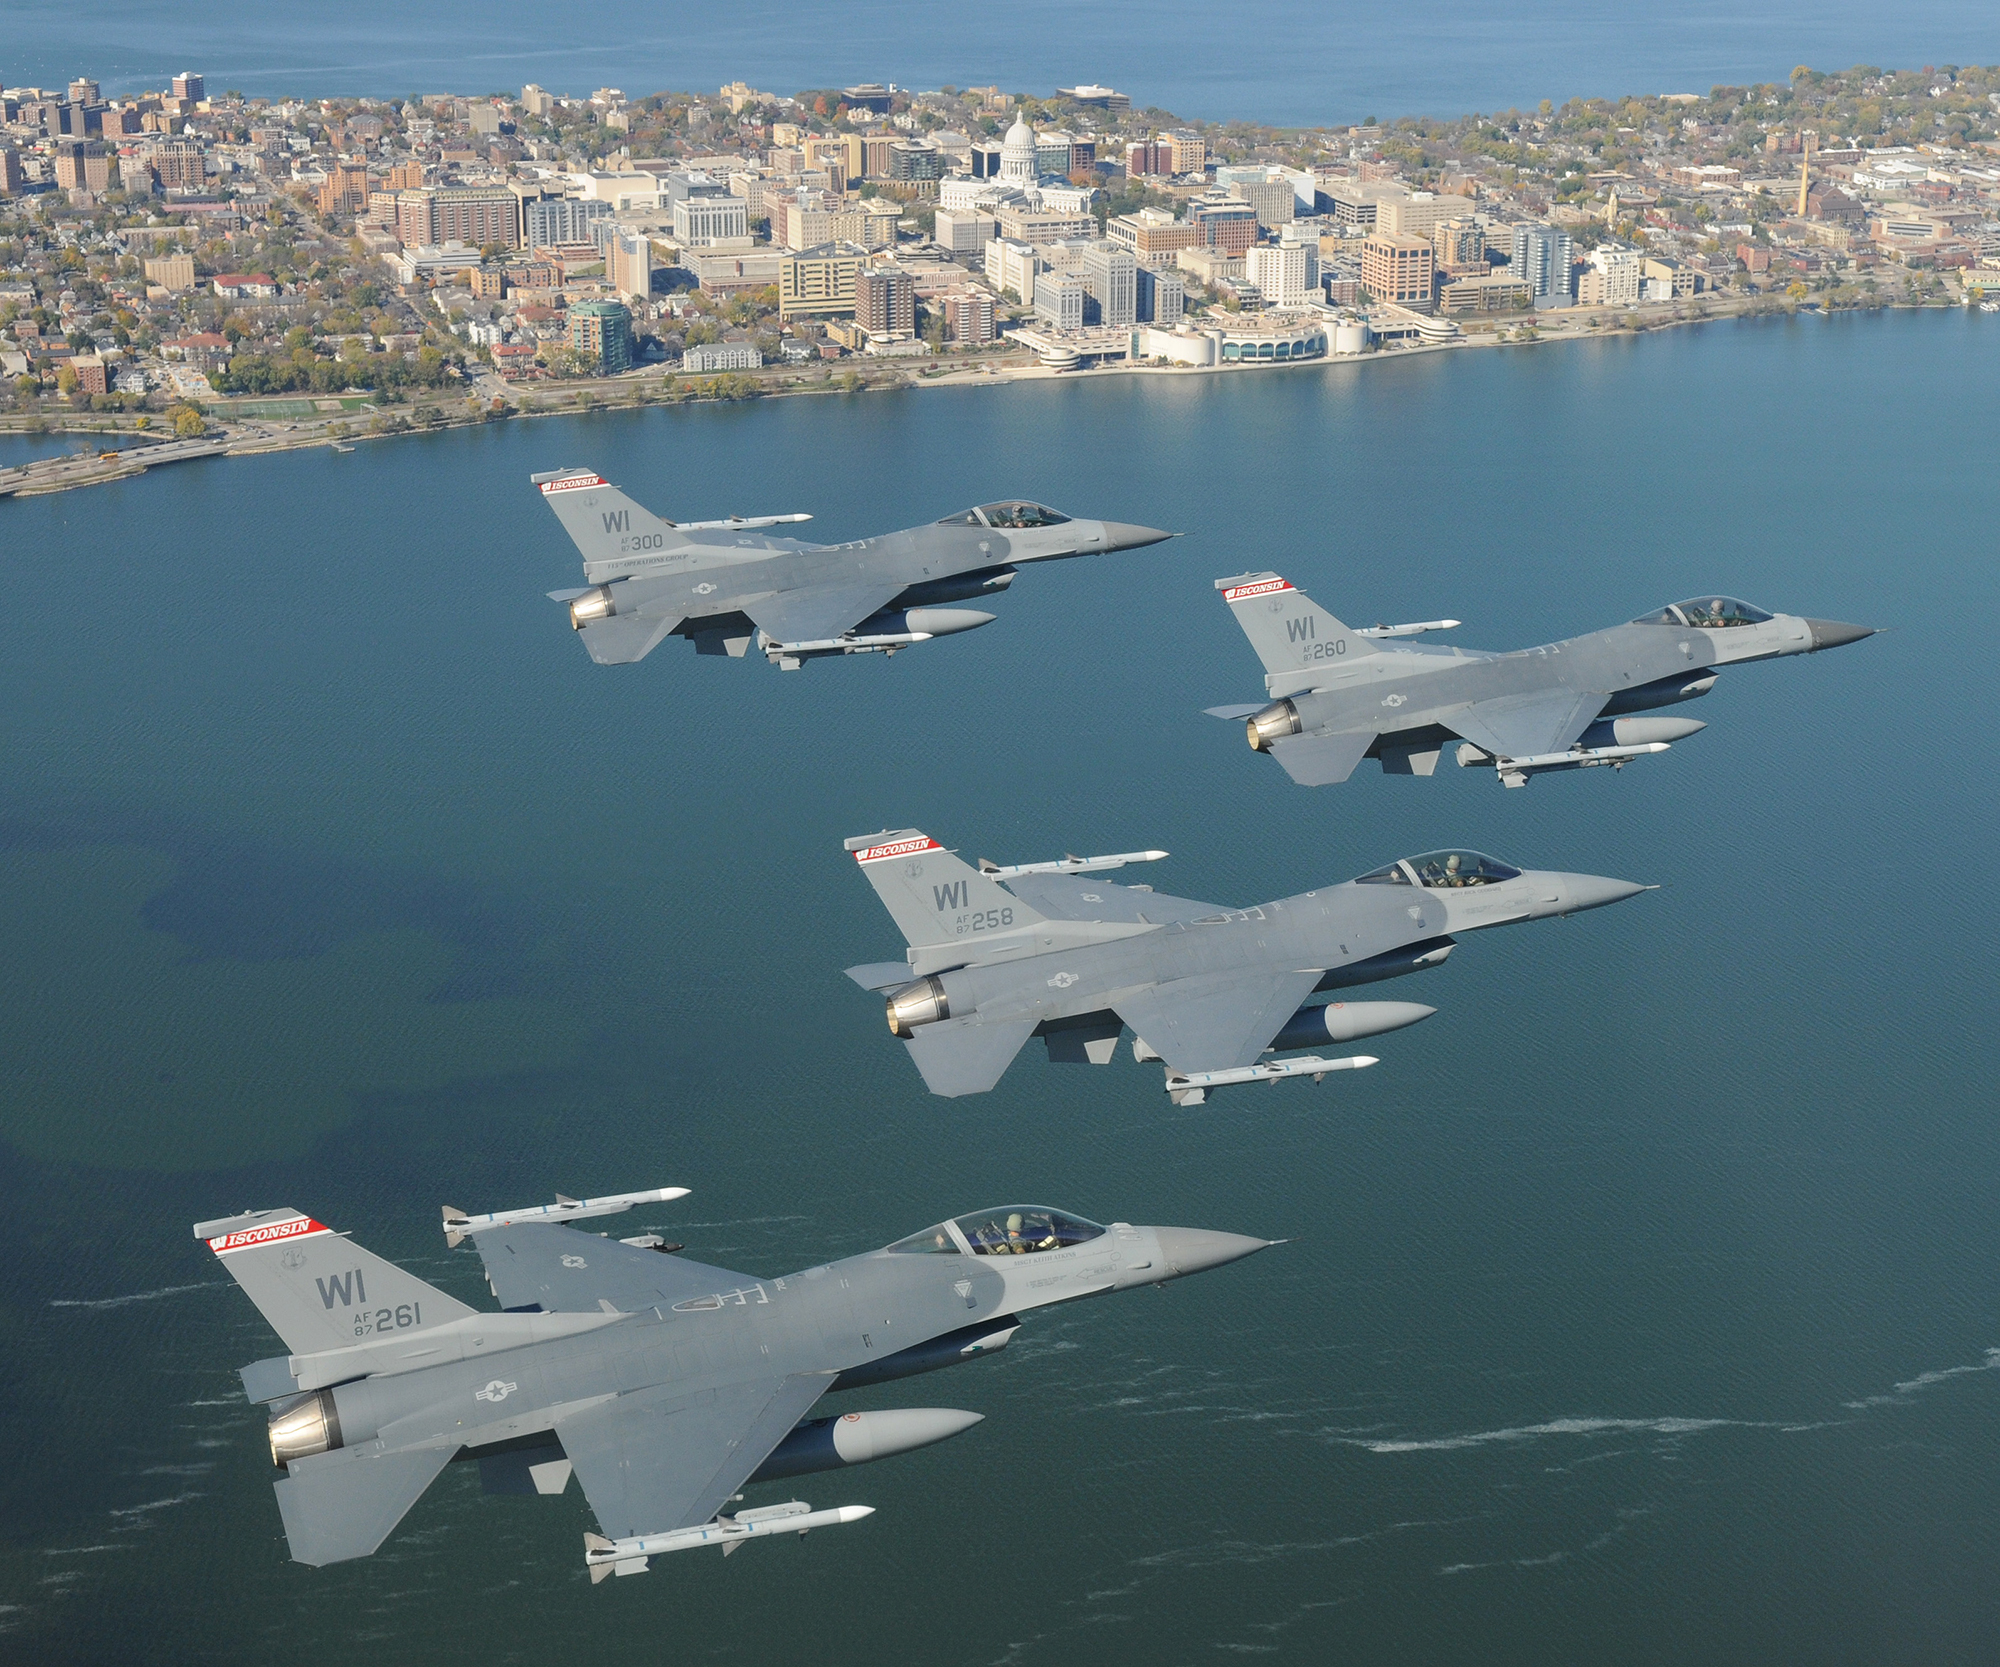 Four jets flying over the Madison, WI, isthmus